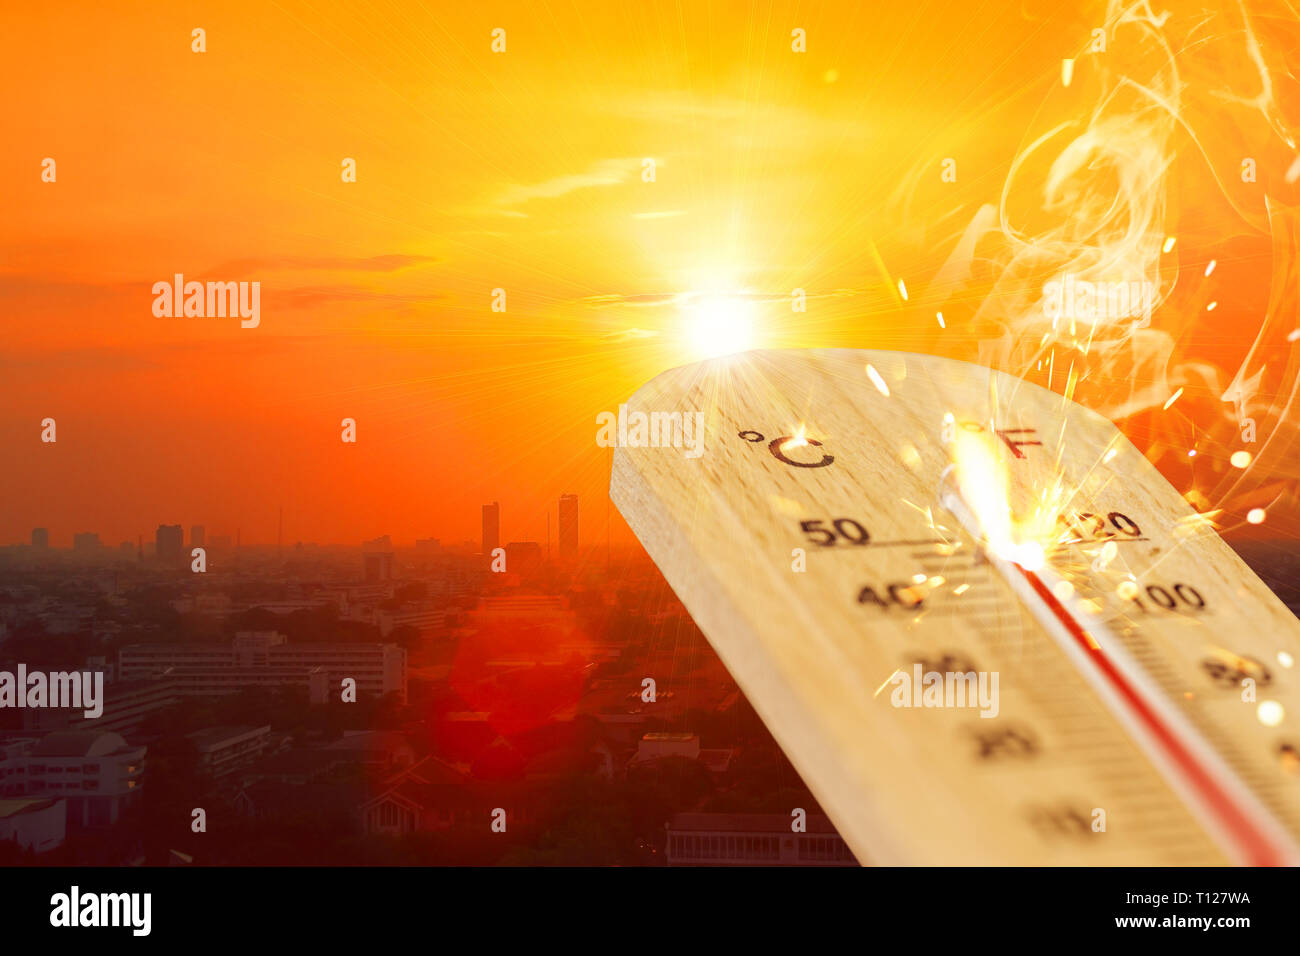 summer hot weather season high temperature thermometer with city view. - Stock Image